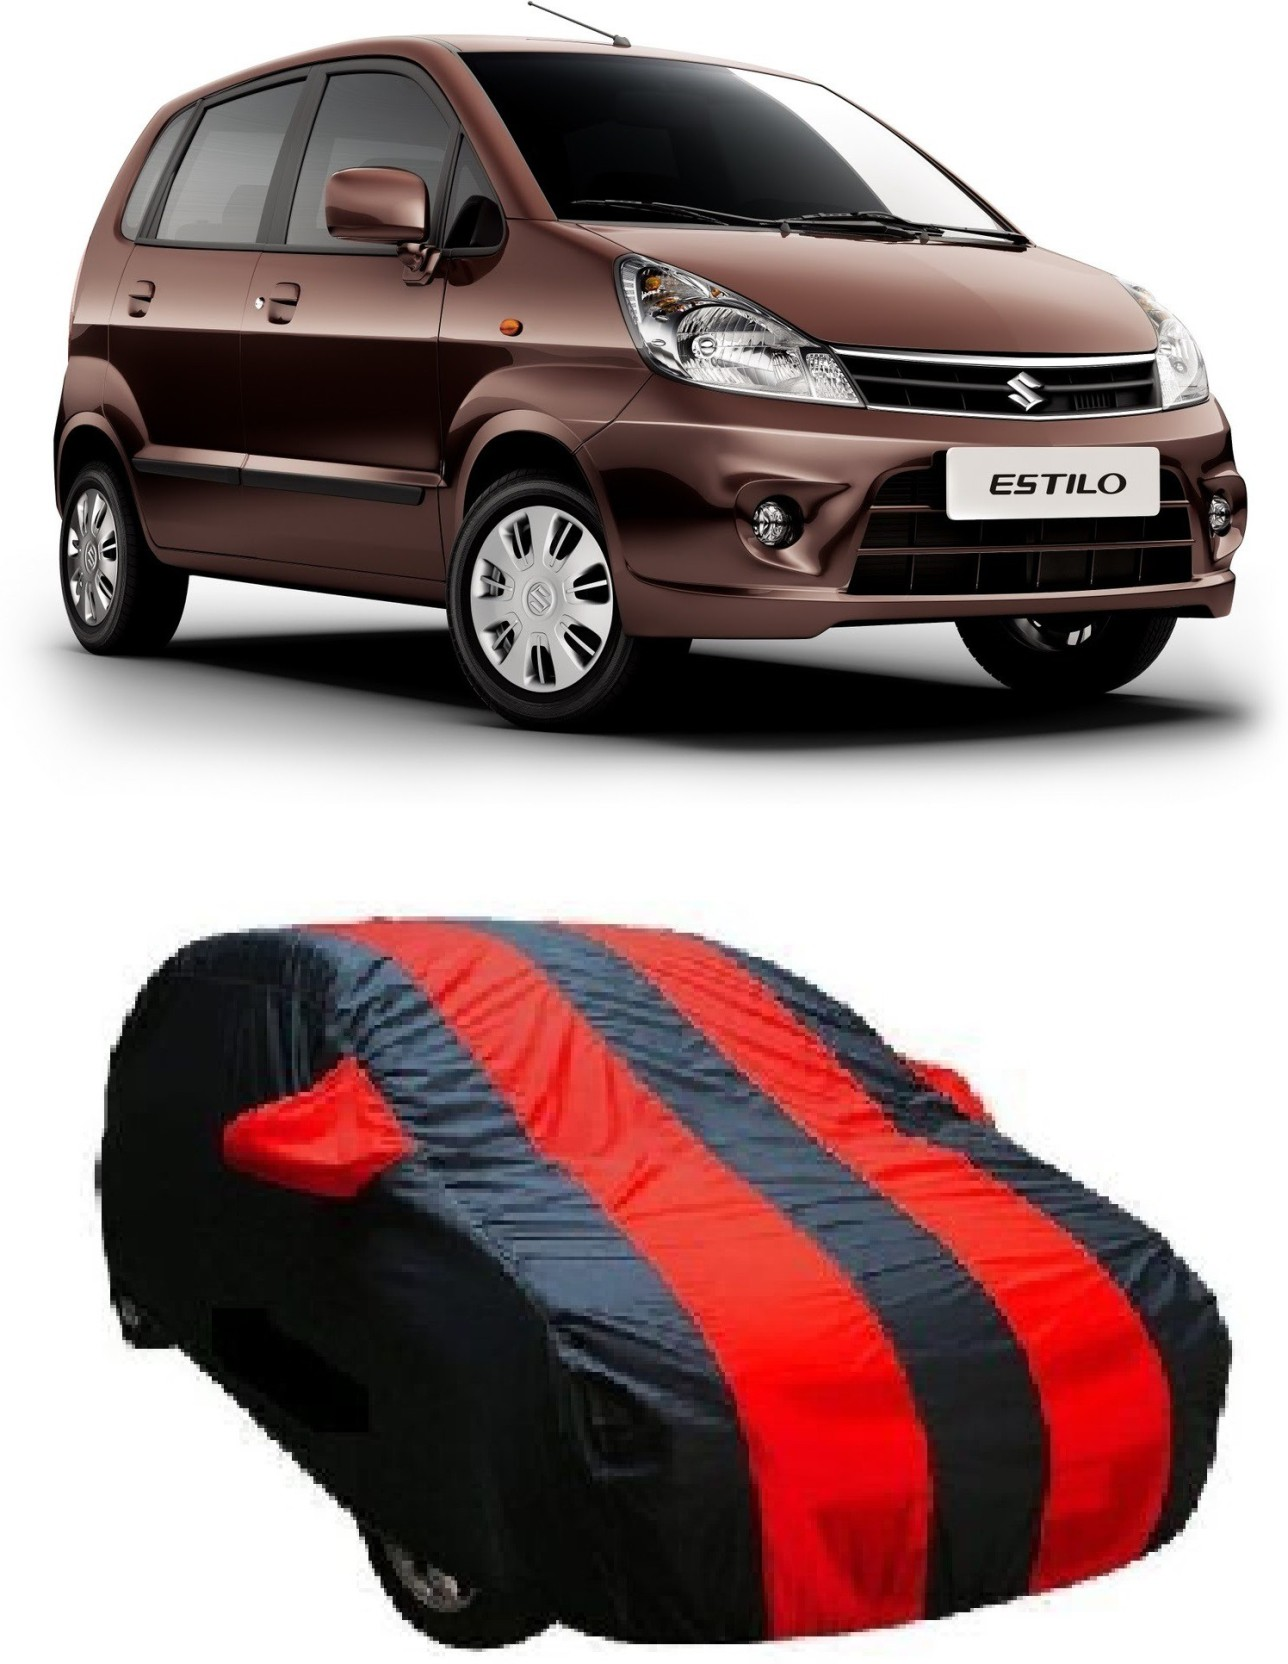 Auto track car cover for maruti suzuki zen estilo with mirror pockets red black